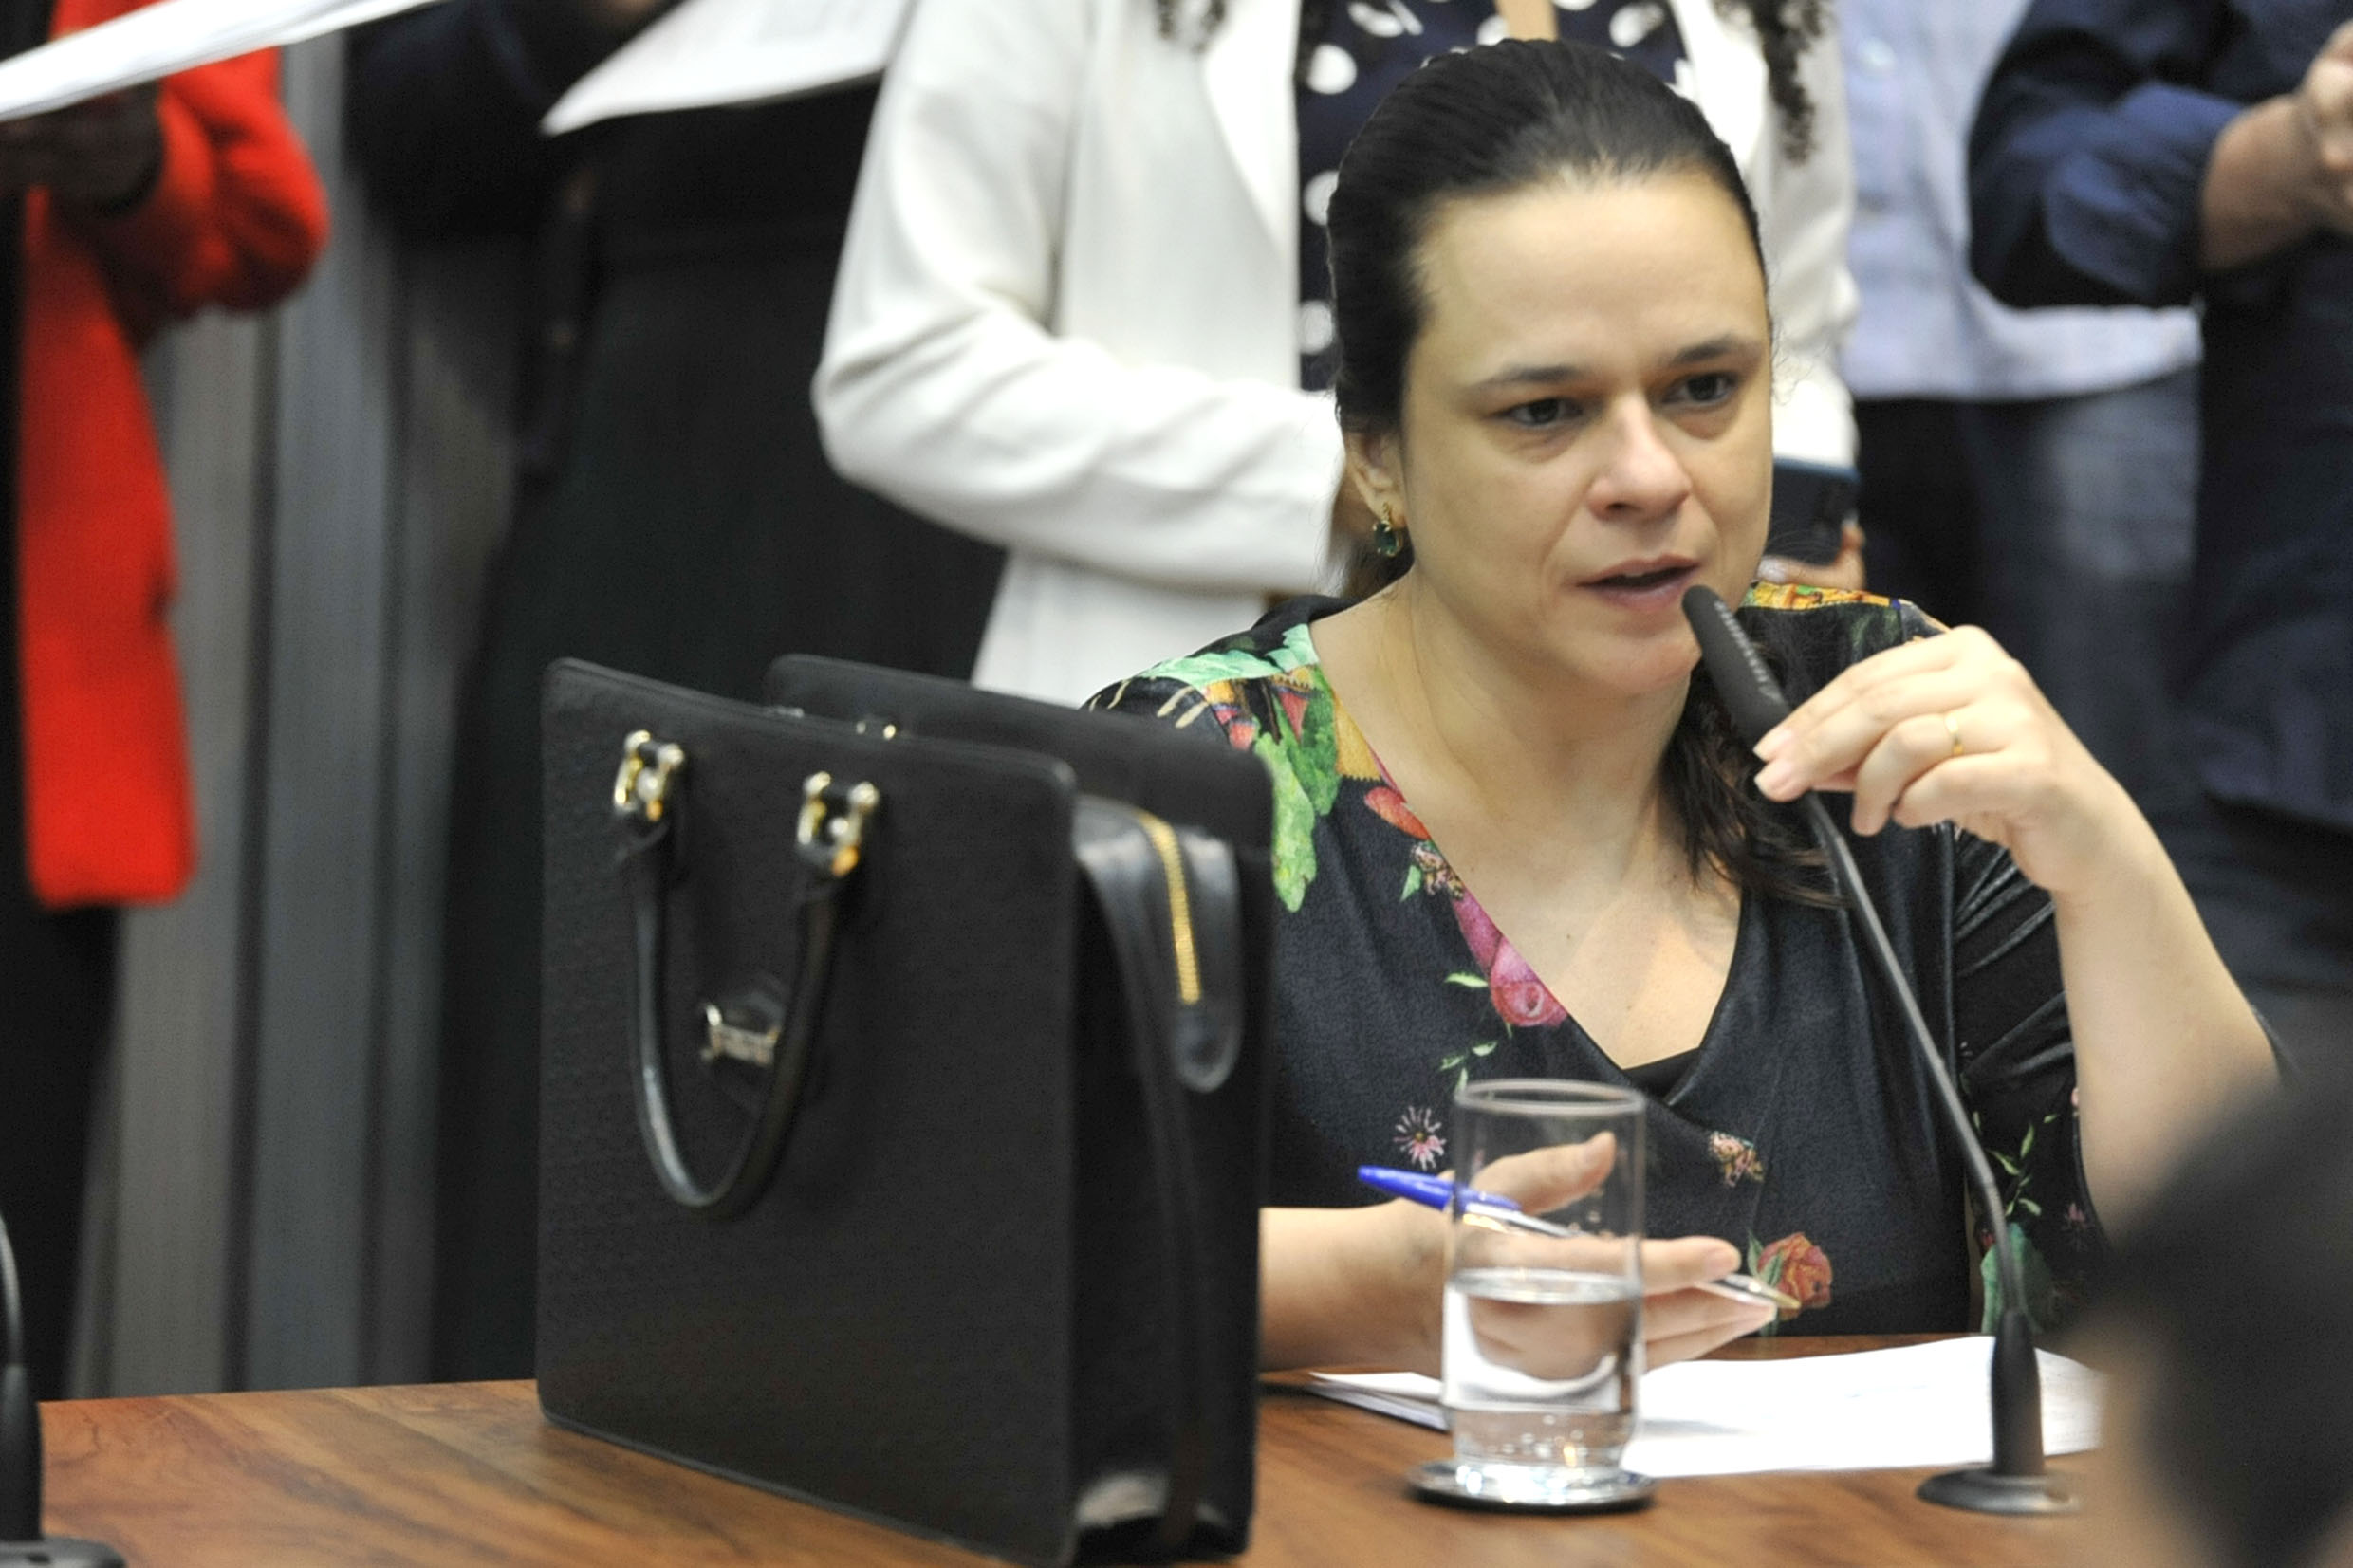 Janaina Paschoal<a style='float:right' href='https://www3.al.sp.gov.br/repositorio/noticia/N-09-2019/fg240449.jpg' target=_blank><img src='/_img/material-file-download-white.png' width='14px' alt='Clique para baixar a imagem'></a>